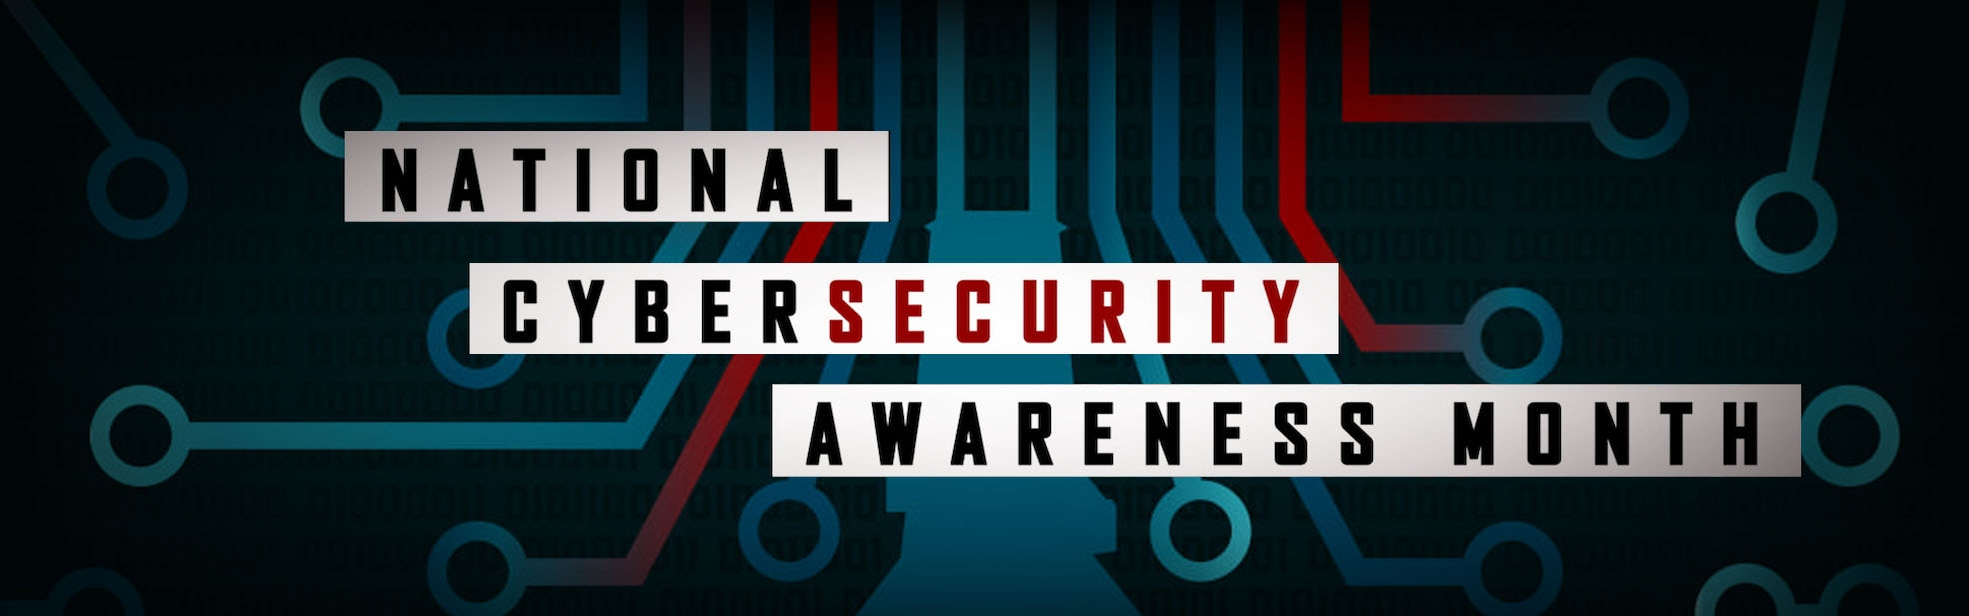 National Cybersecurity Awareness Month Homepage Banner